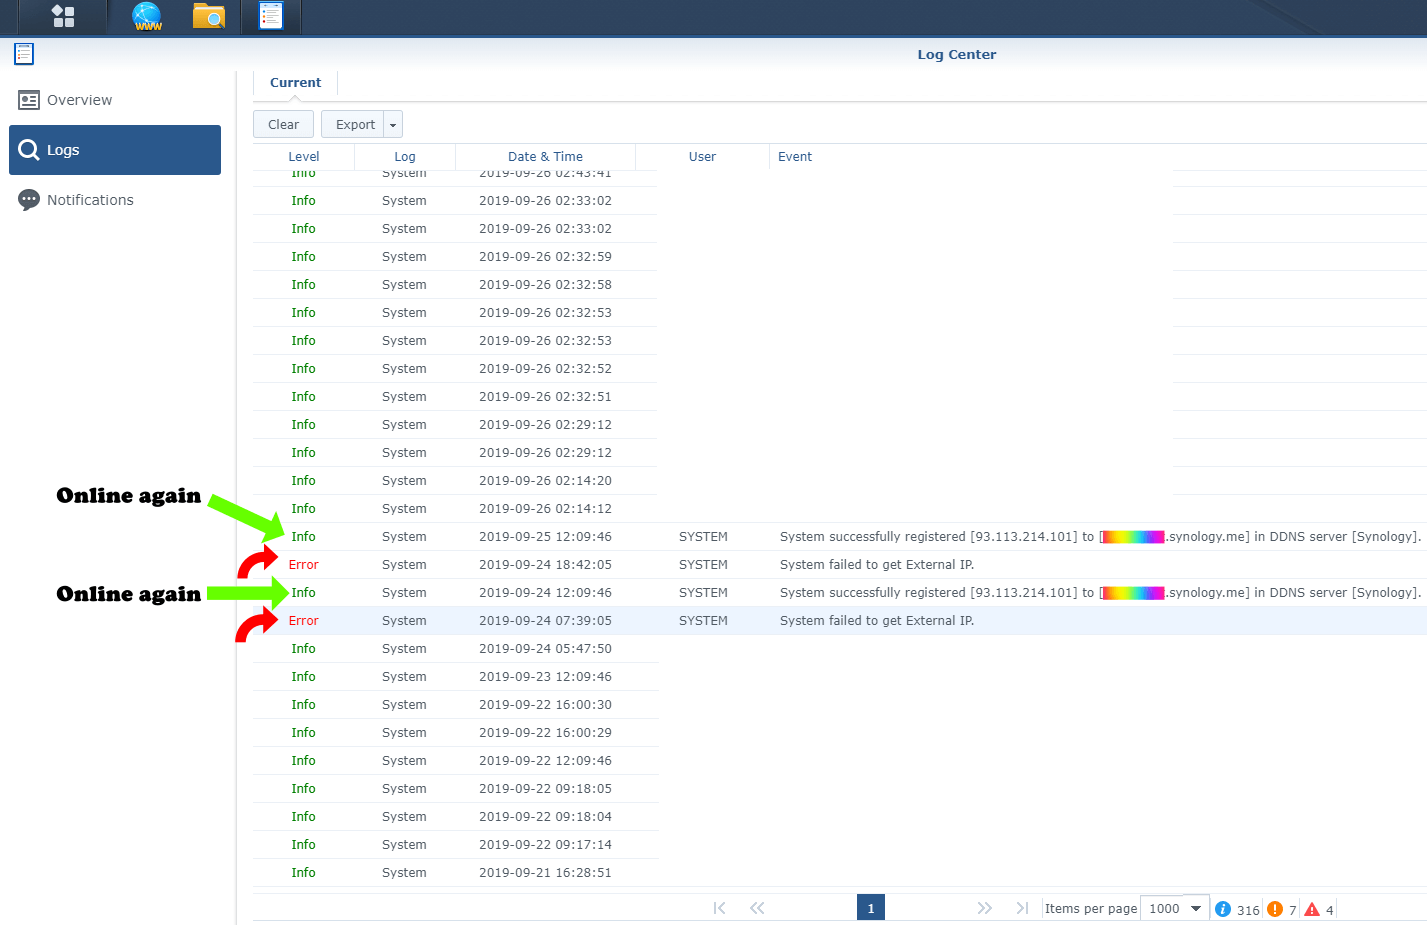 Log Center Synology System failed to get External IP